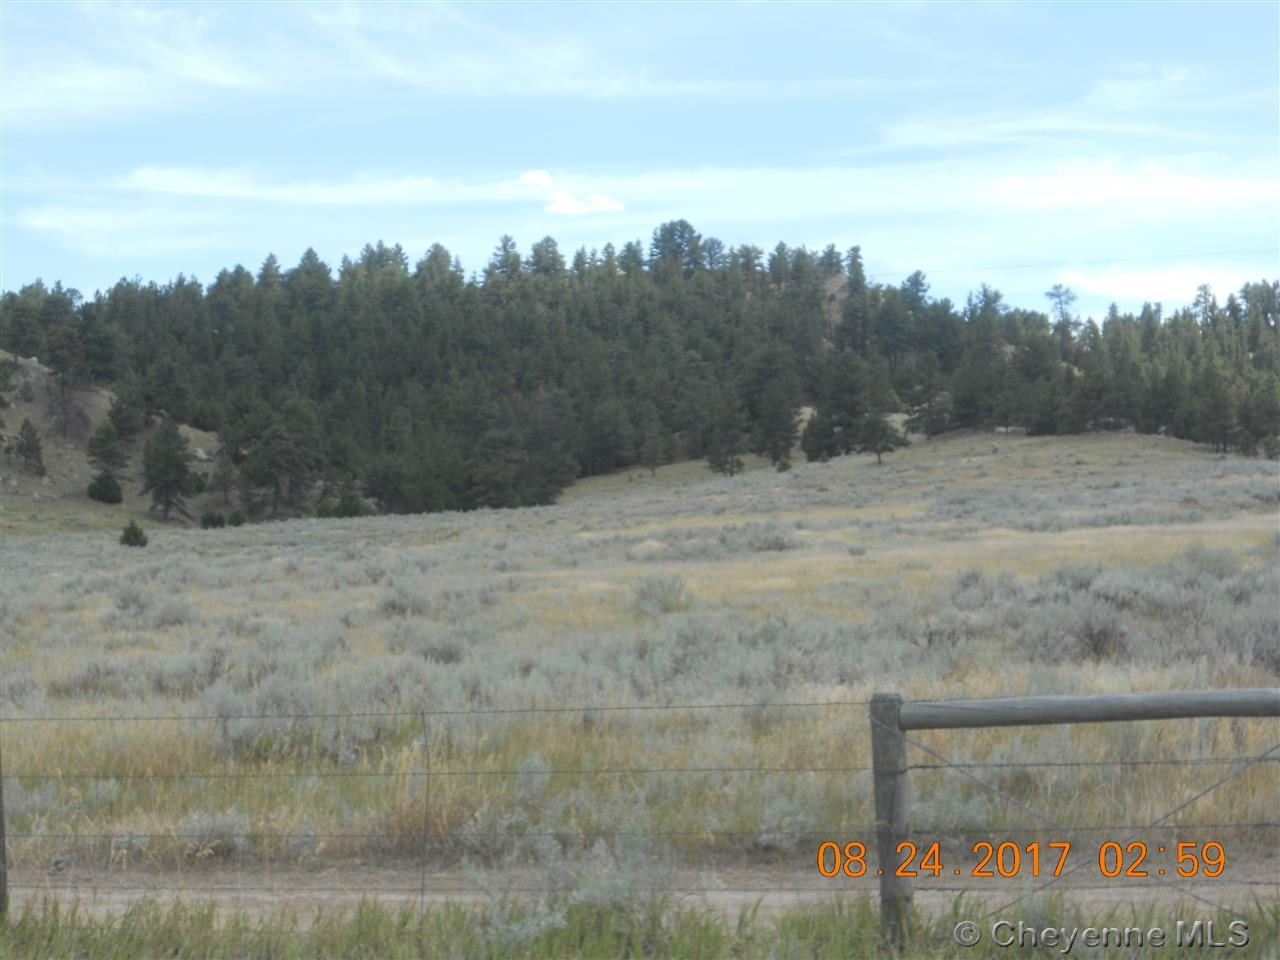 Land for Sale at Lot 2 Wagon Wheel Rd Lot 2 Wagon Wheel Rd Glendo, Wyoming 82213 United States